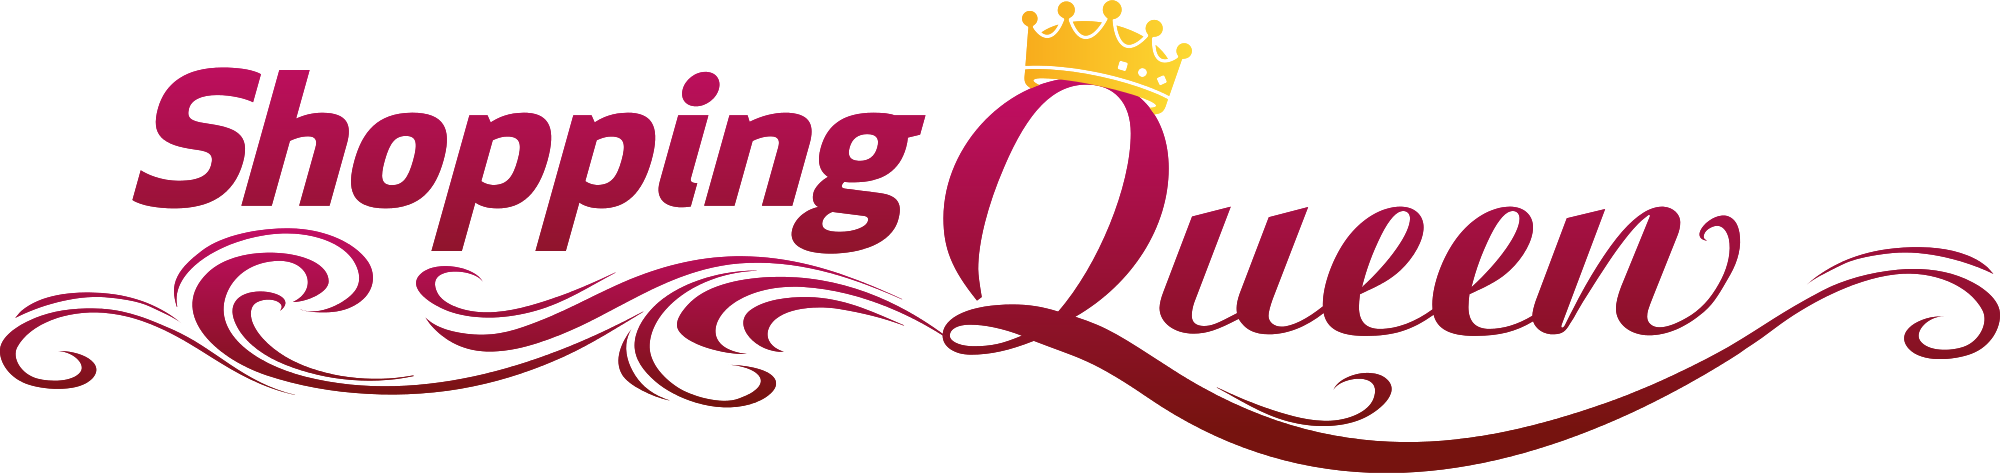 Queen svg #14, Download drawings